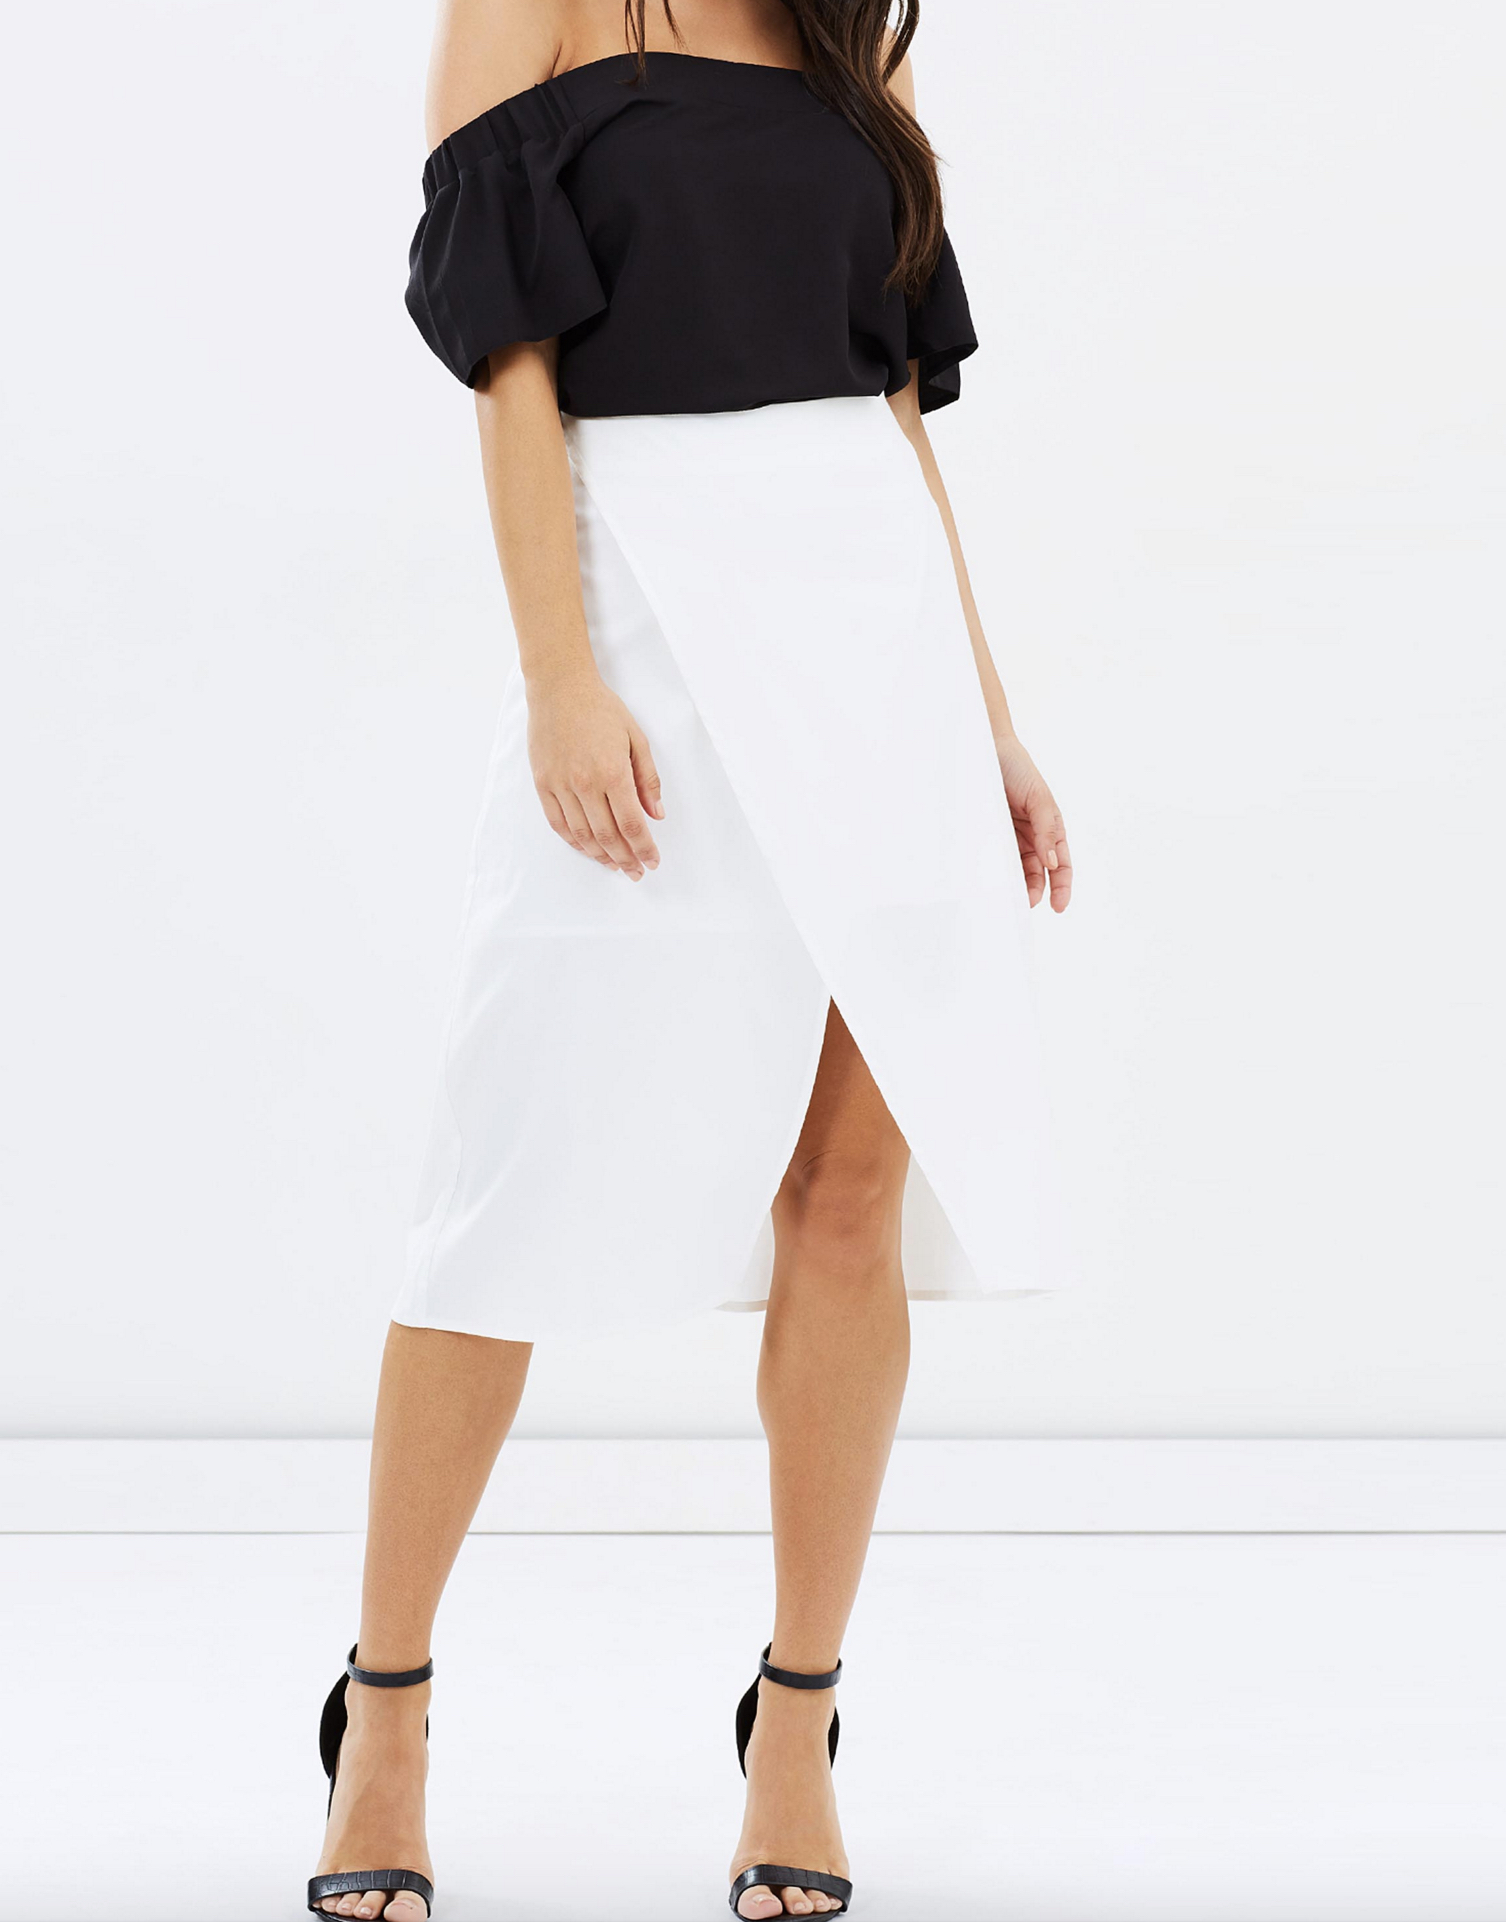 Atmos & Here Melani wrap skirt $59.95